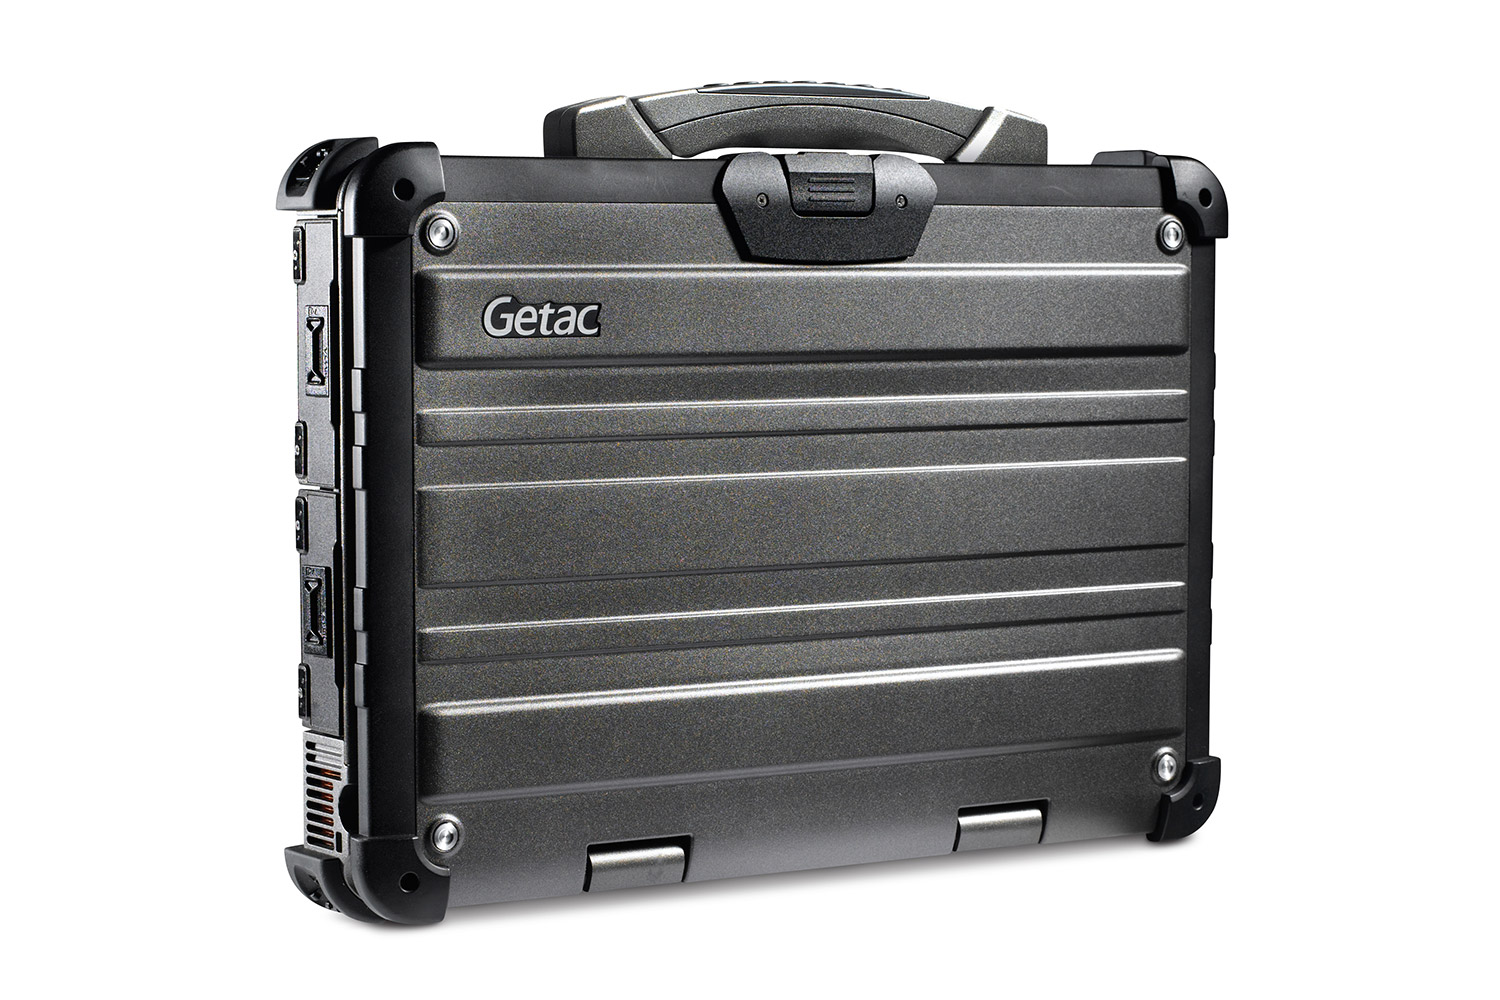 080-X500-Rugged-expandable-notebook-00001